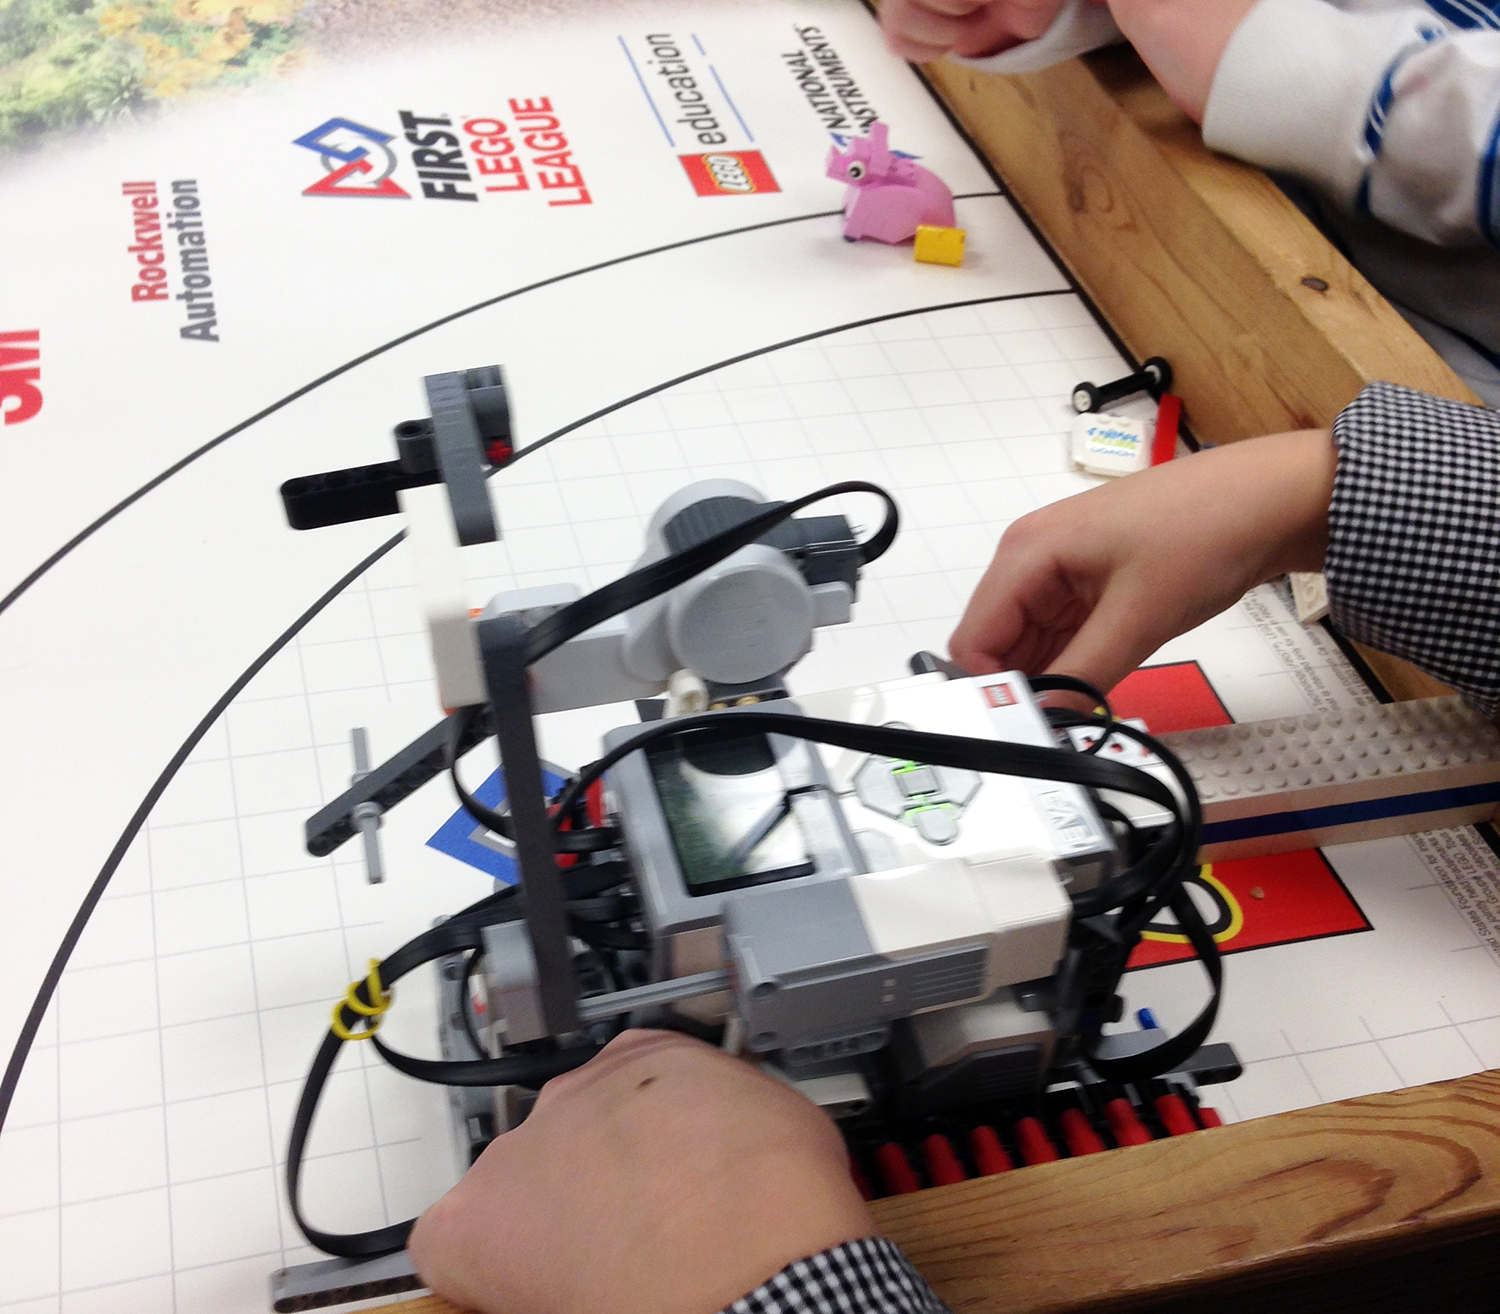 Our Robot!